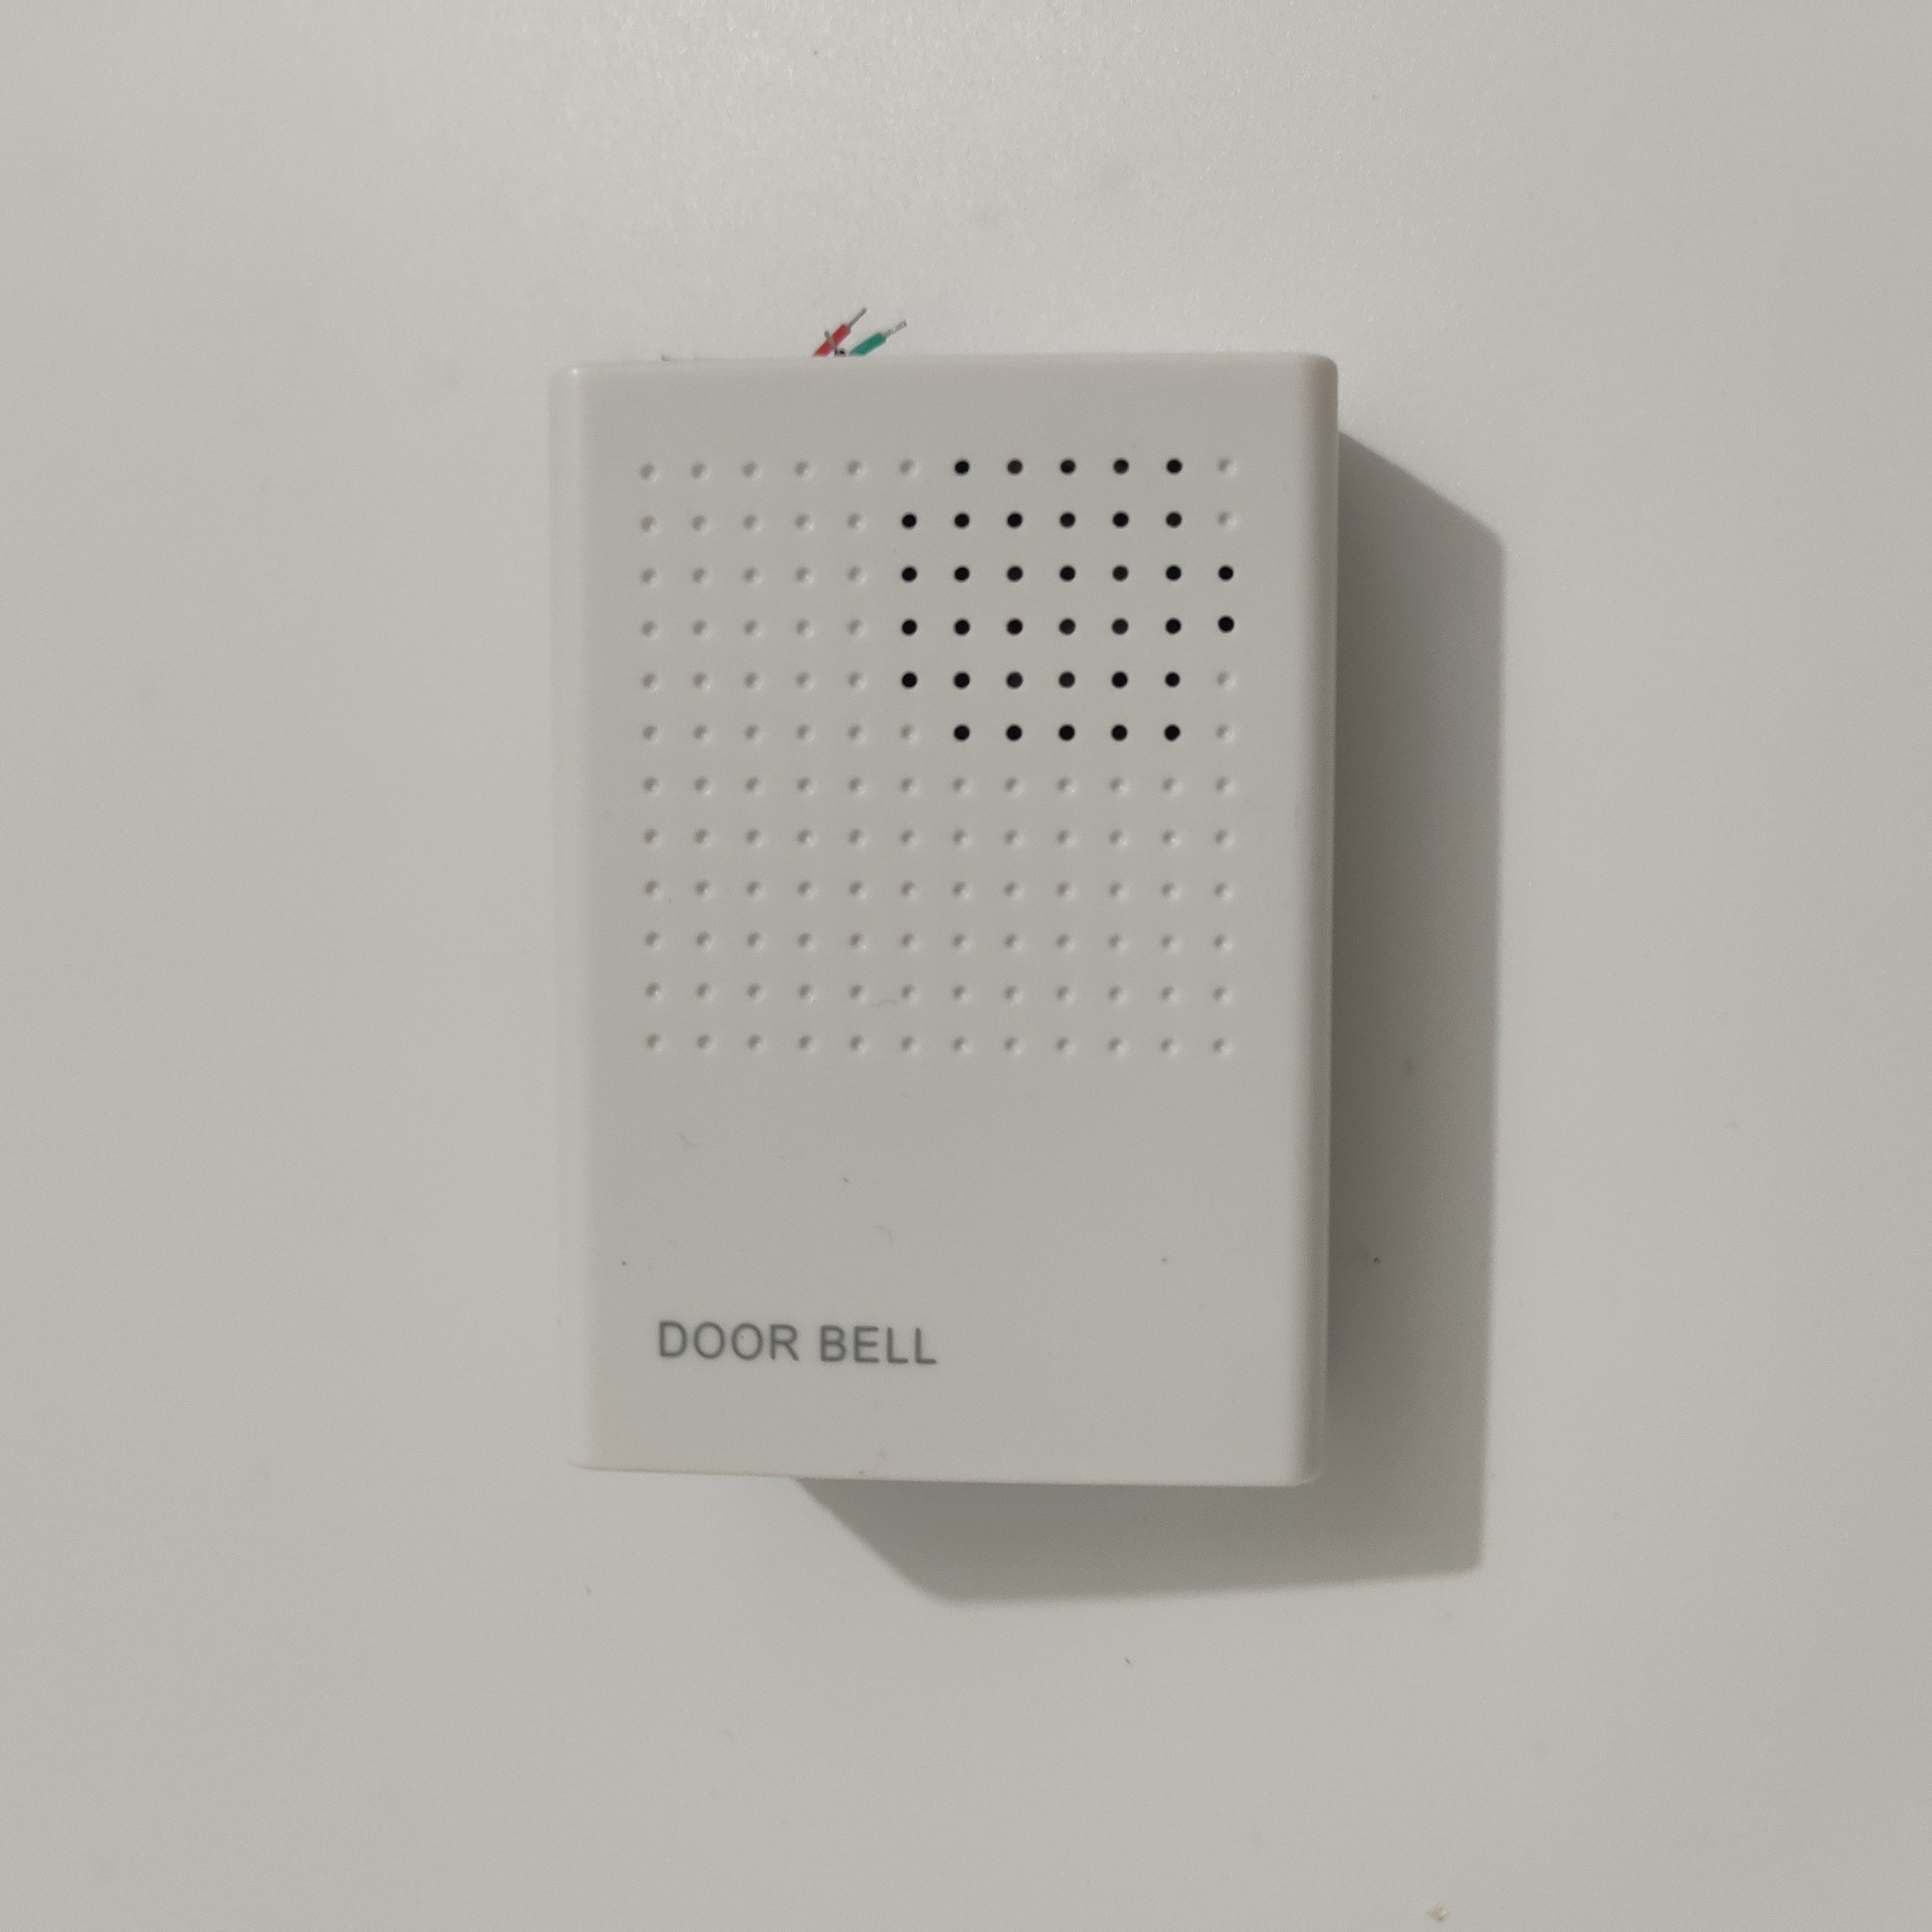 Wired Door Bell Chime DC 12V Vocal Wired Doorbell Welcome Door Bell For Office Home Security Access Control System White inhidaihd d110 24 melody wired doorbell white 3 x aa